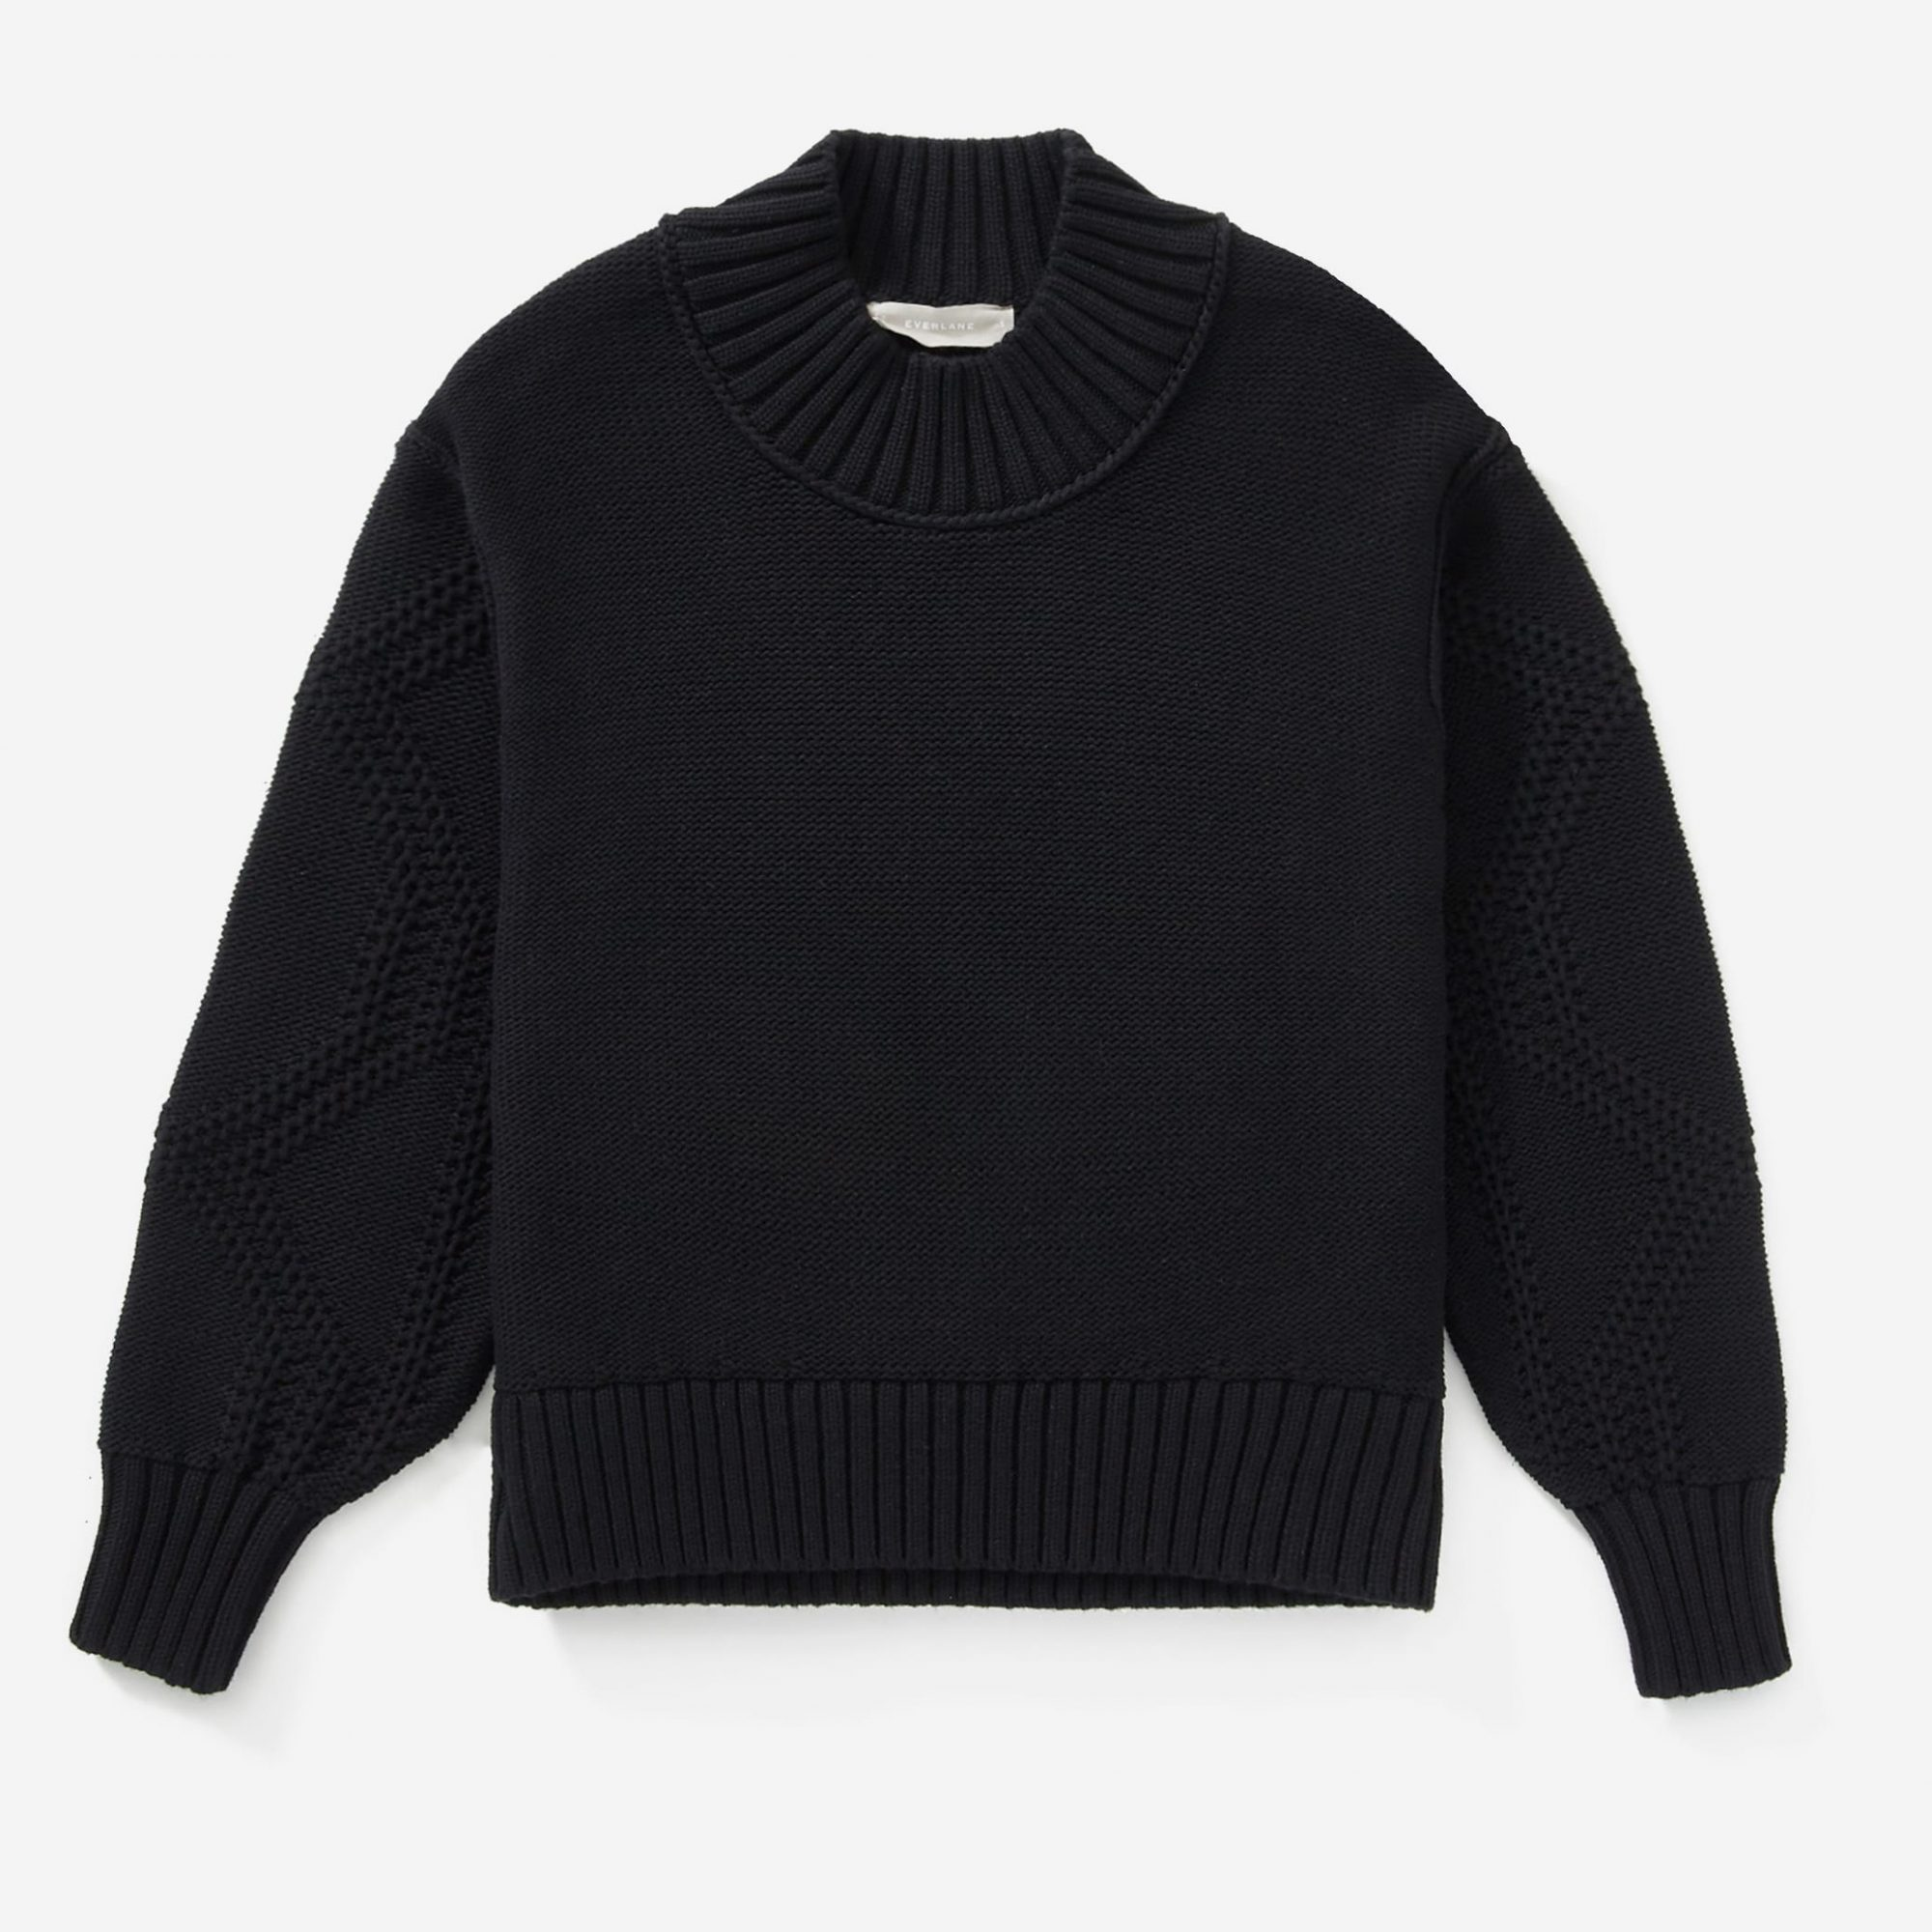 Everlane Texture Cotton Cable Sweater